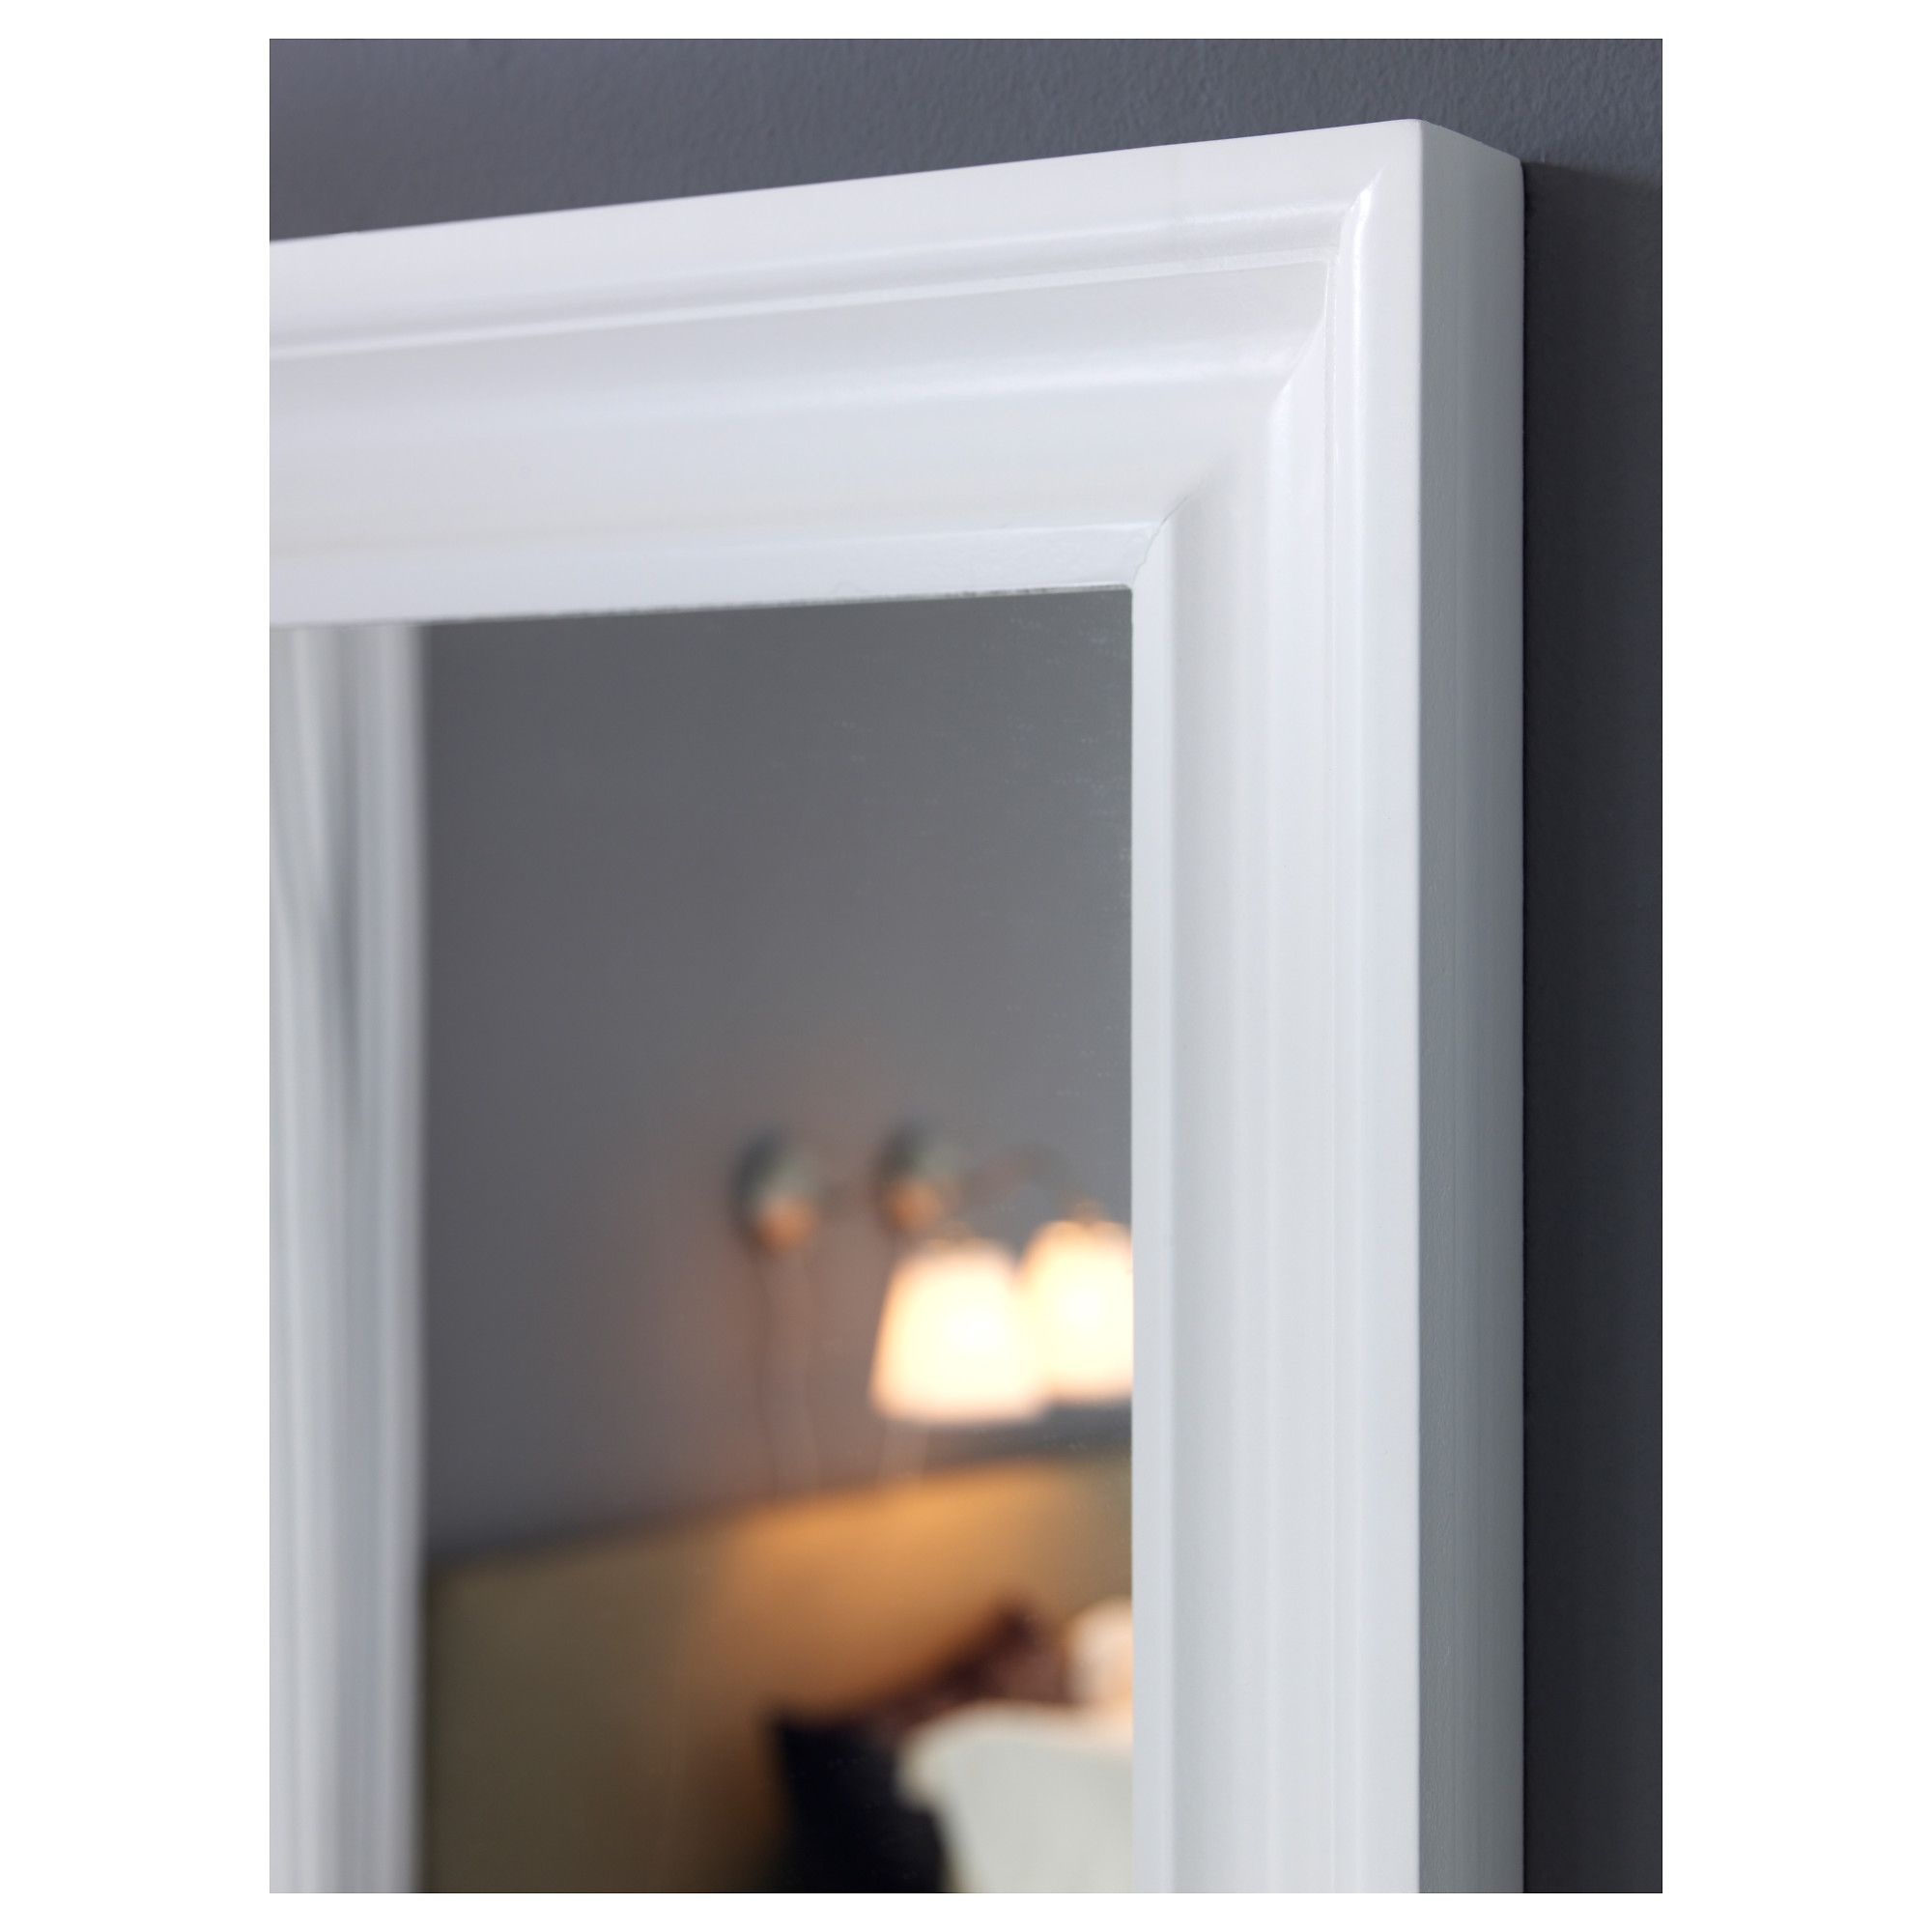 Spiegel Songe Ikea Hemnes Mirror White In 2019 Diy Ikea Hemnes Mirror